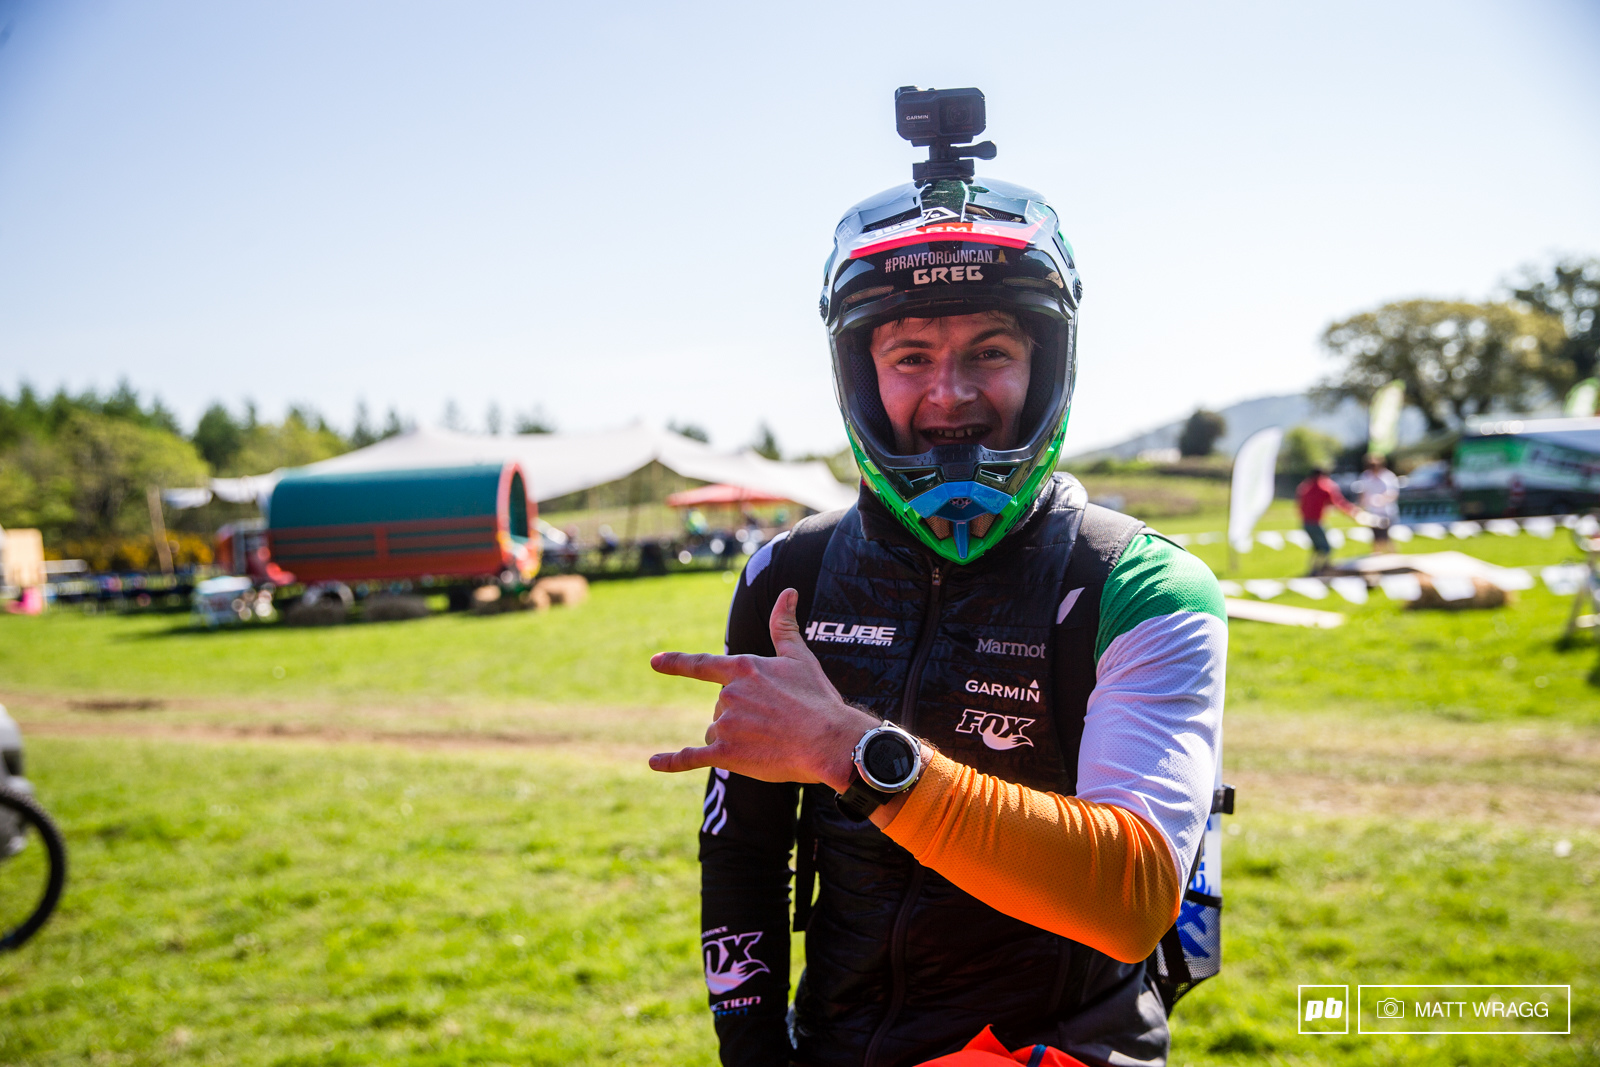 With national championships starting to emerge for enduro that means lucky racers now get to wear their national sleeve. Greg Callaghan is more than a little bit proud to be representing the Parish as the locals refer to it.